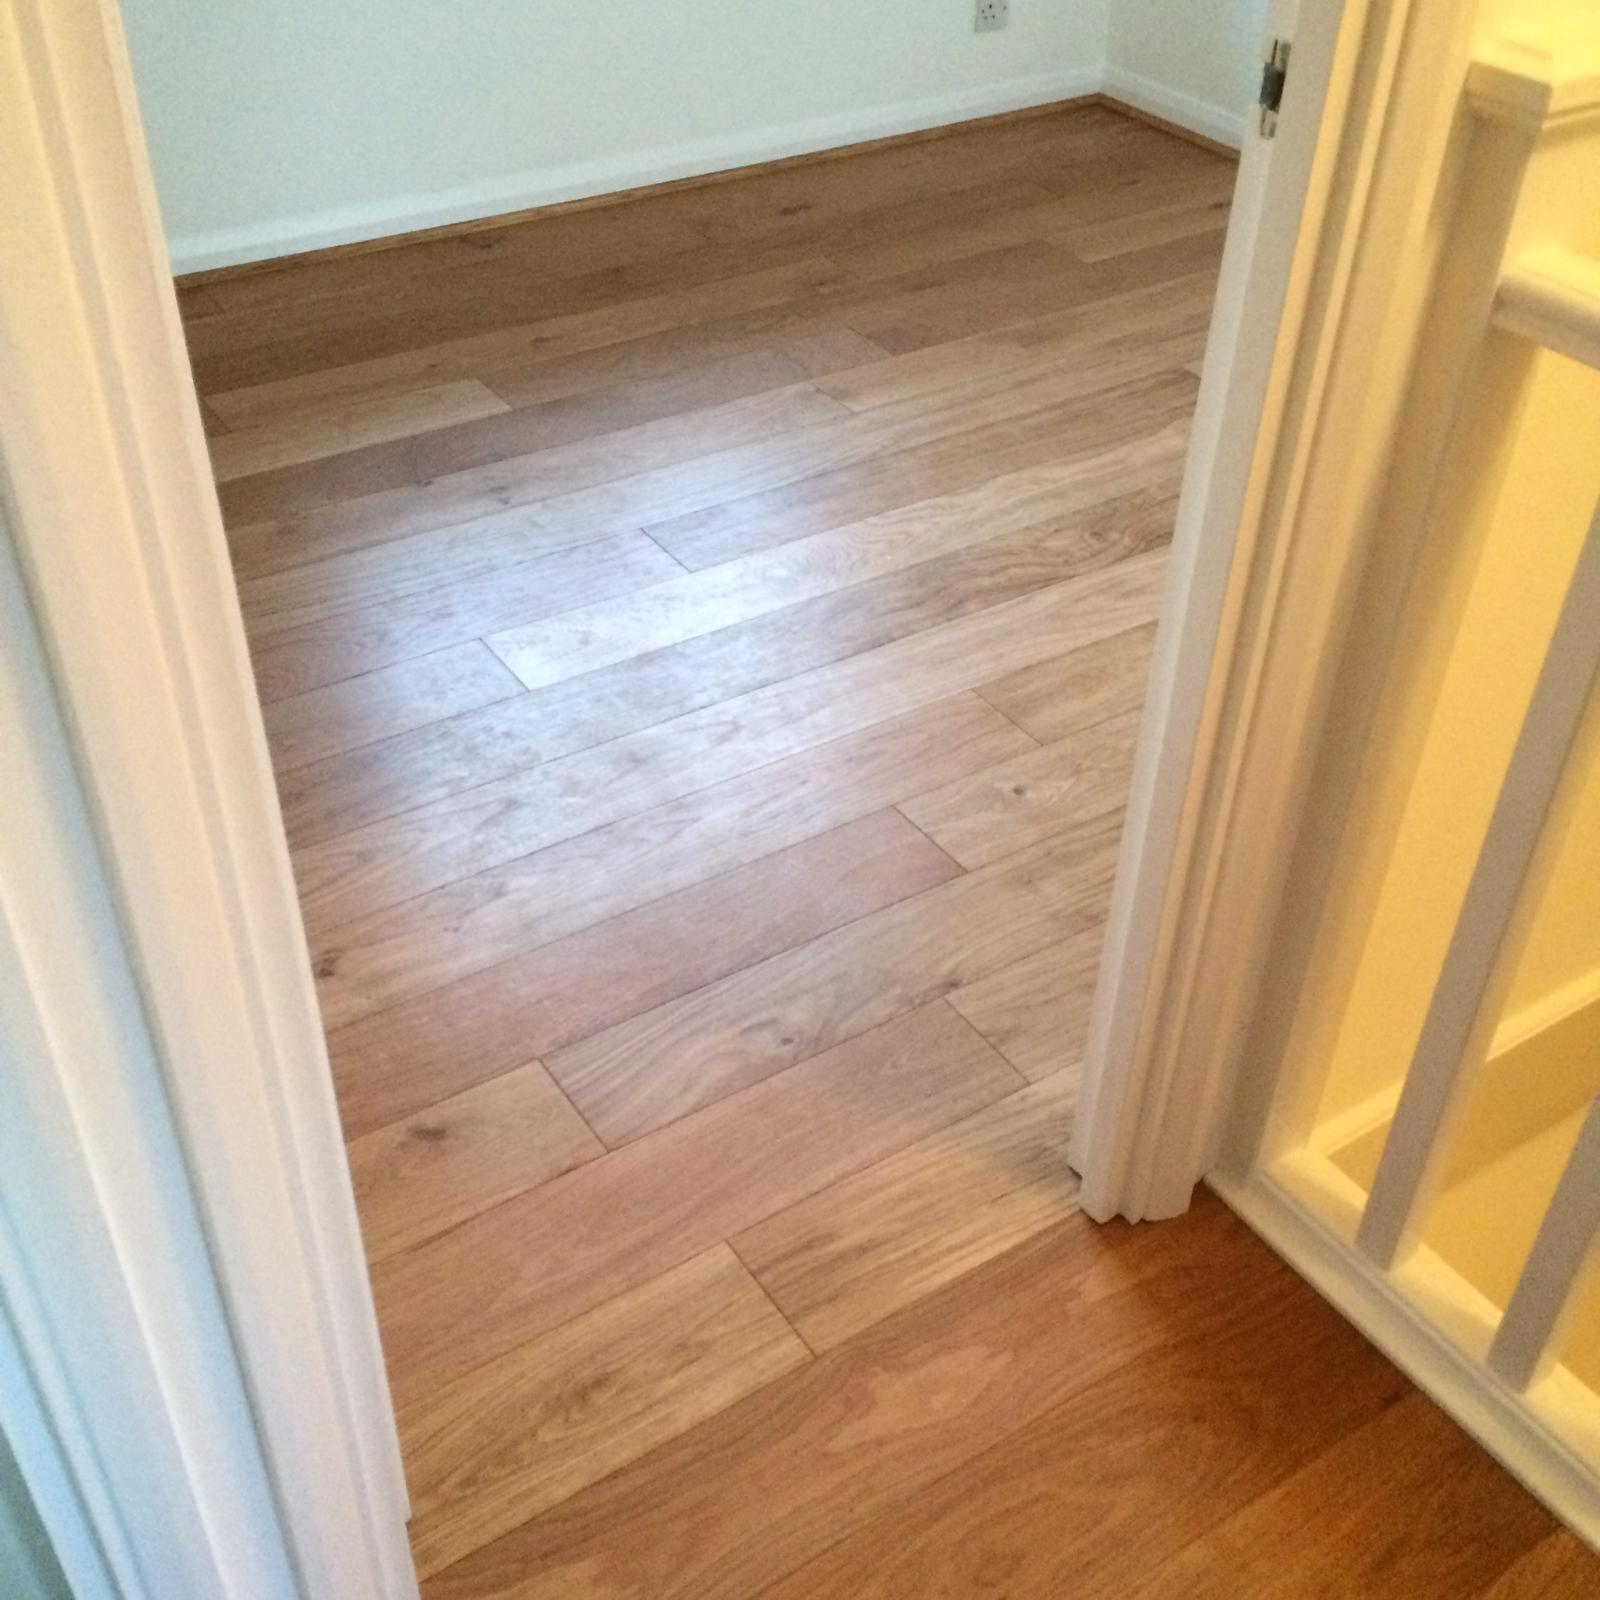 Furlong 5816 Wood Flooring 3